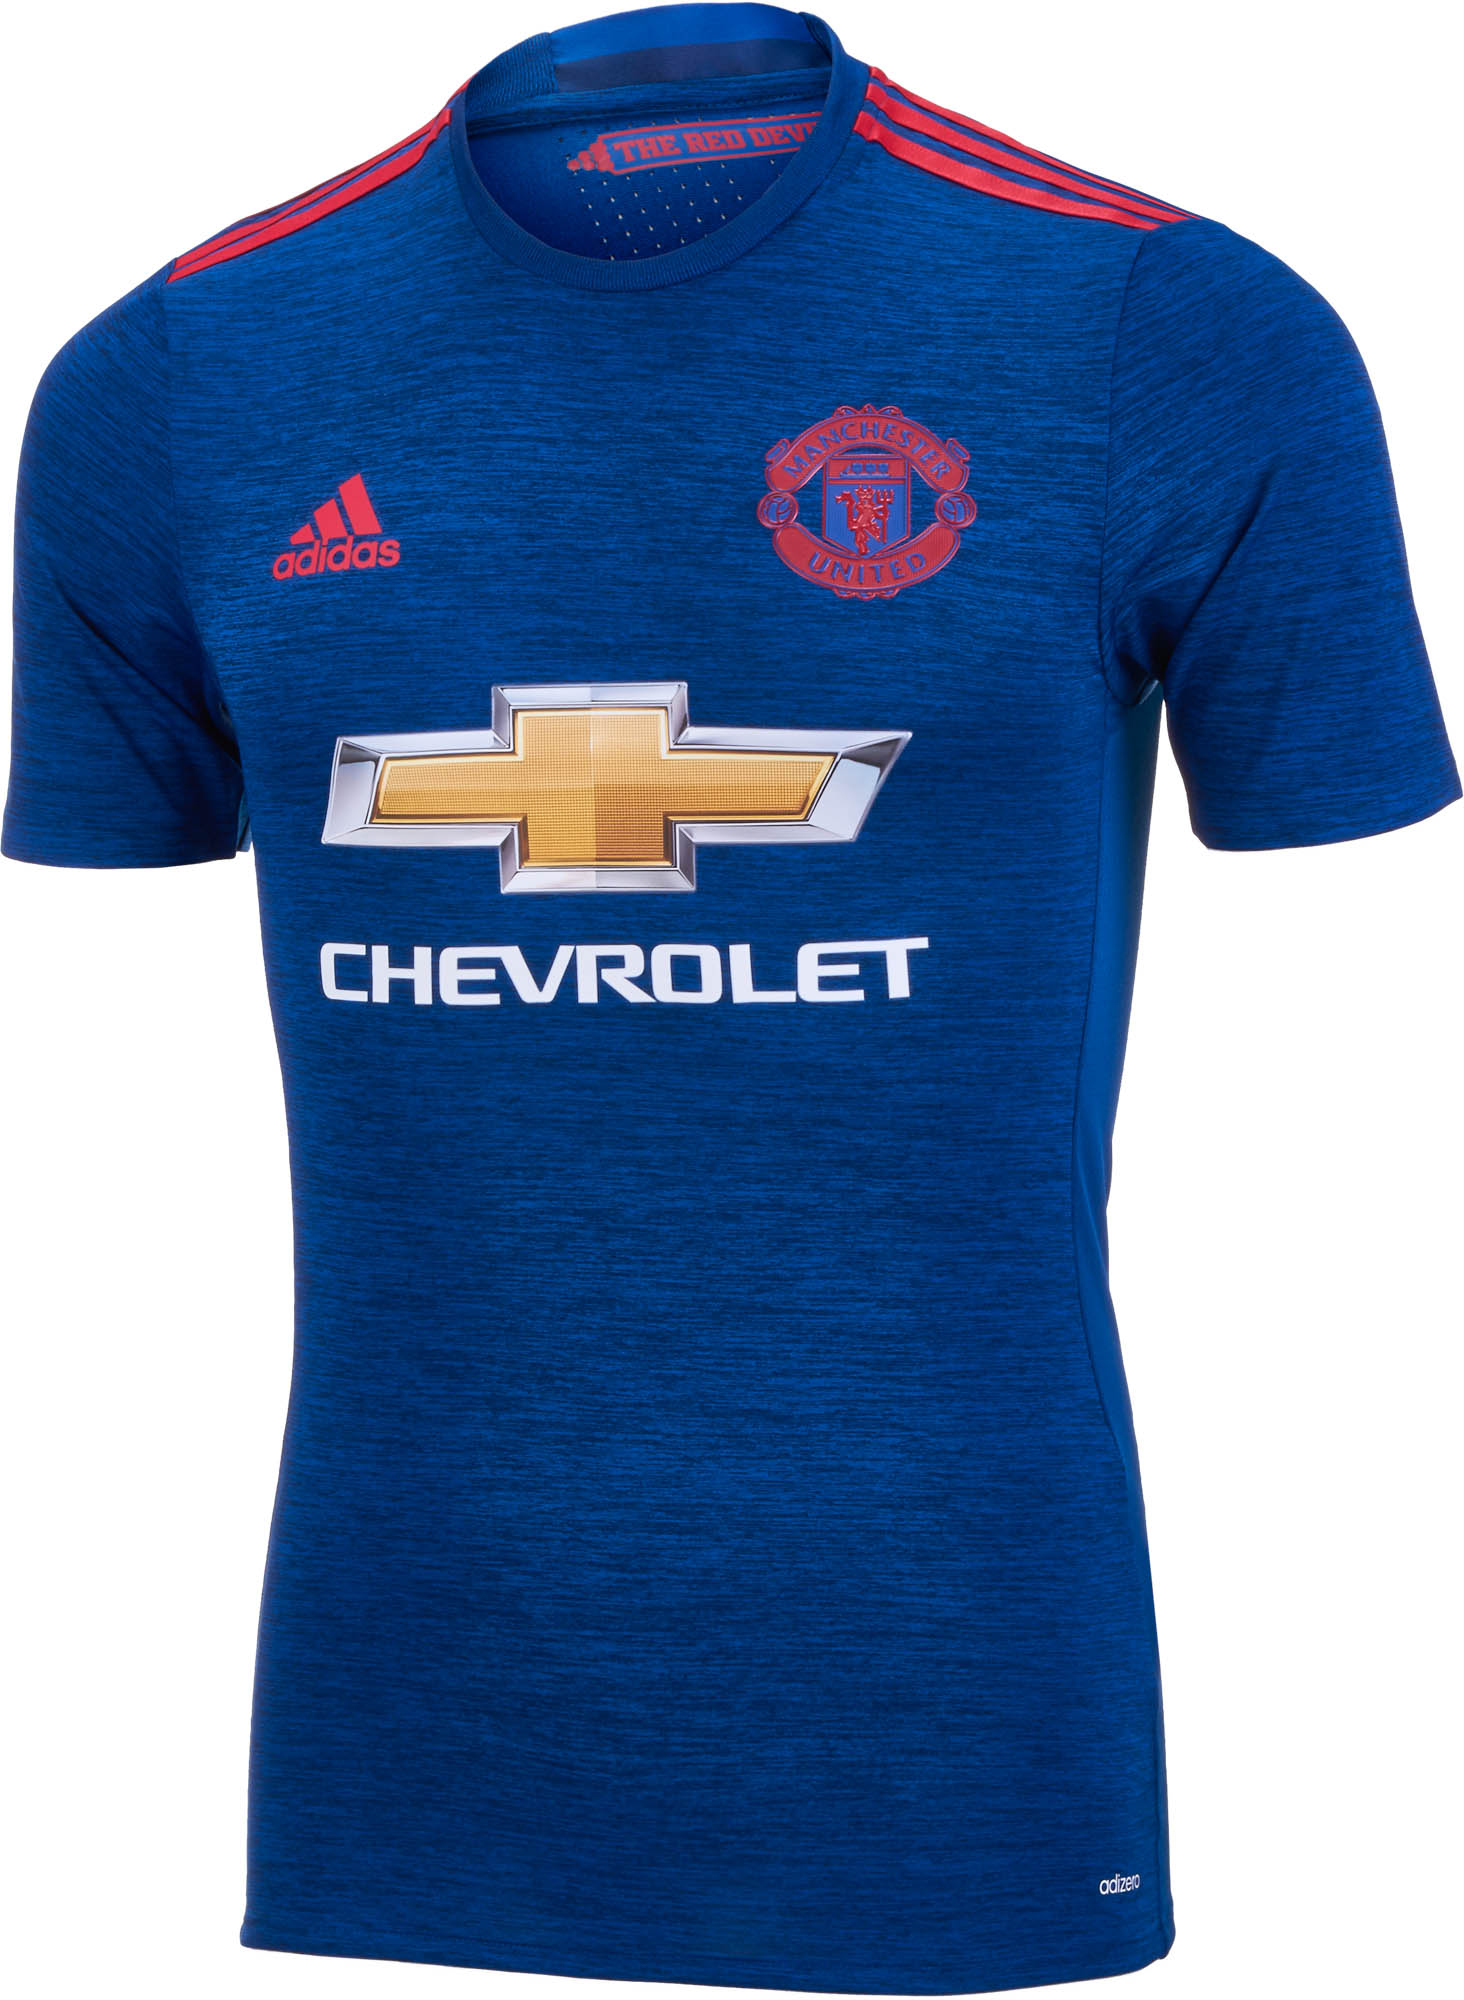 Authentic Manchester United Jersey Adidas Man United Away Jerseys